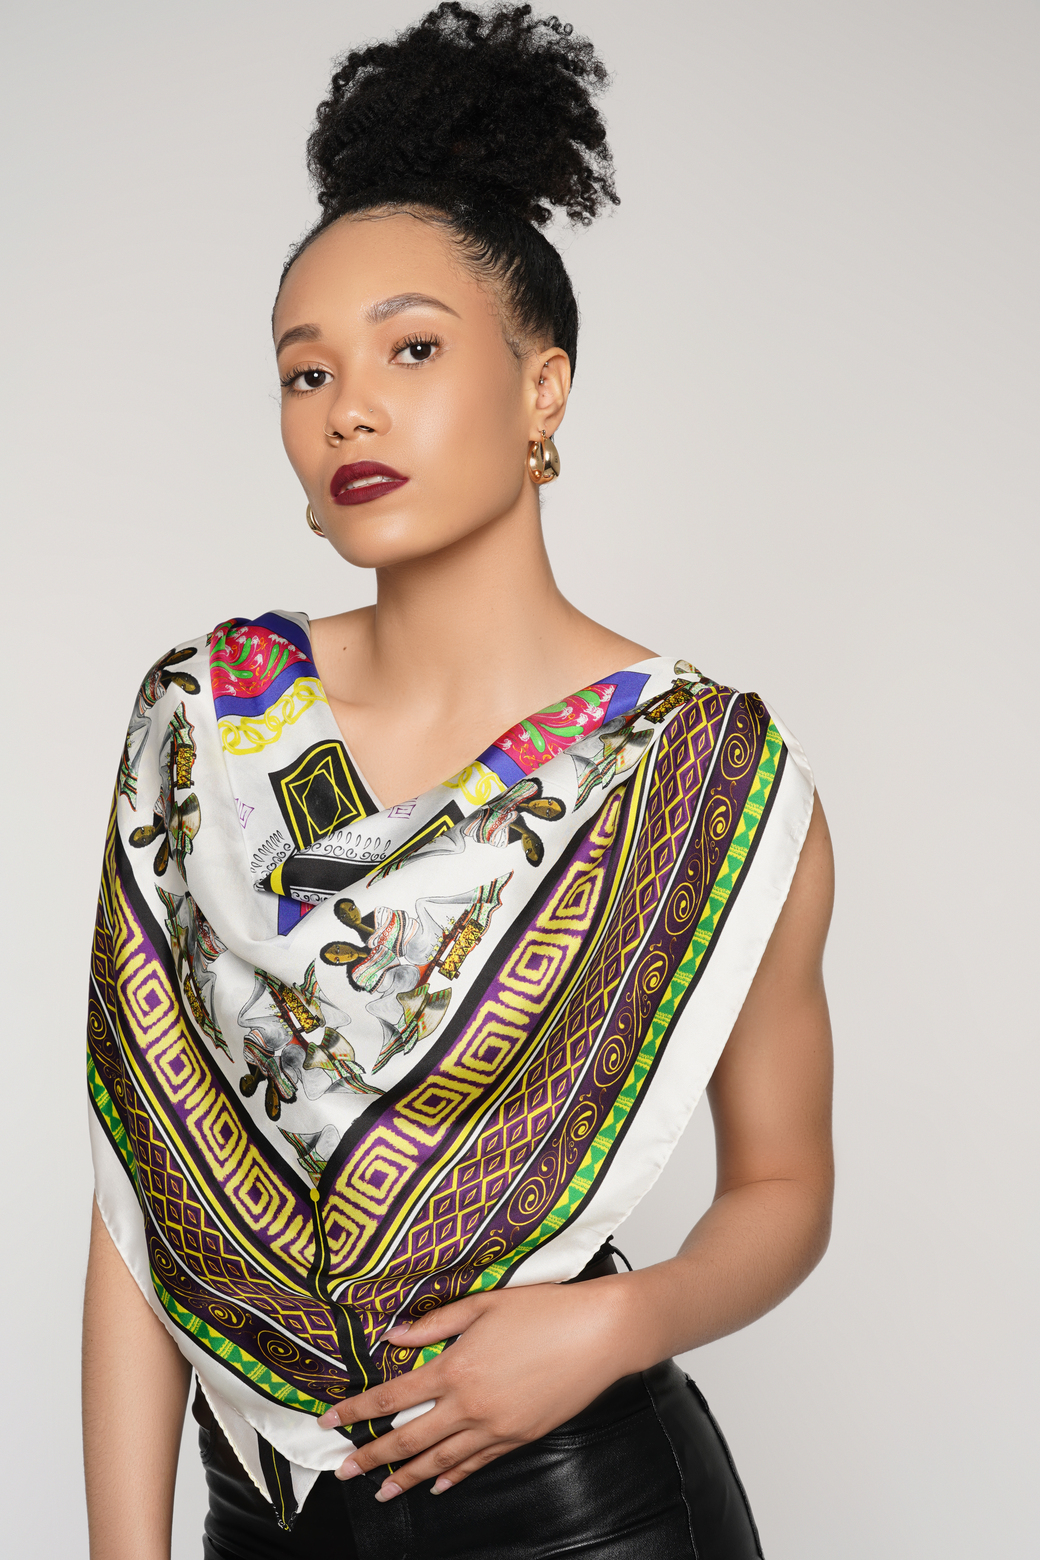 Silks Of Sheba Announces Physical Stores in South Africa and New York For Its African-inspired Scarf Designs 6